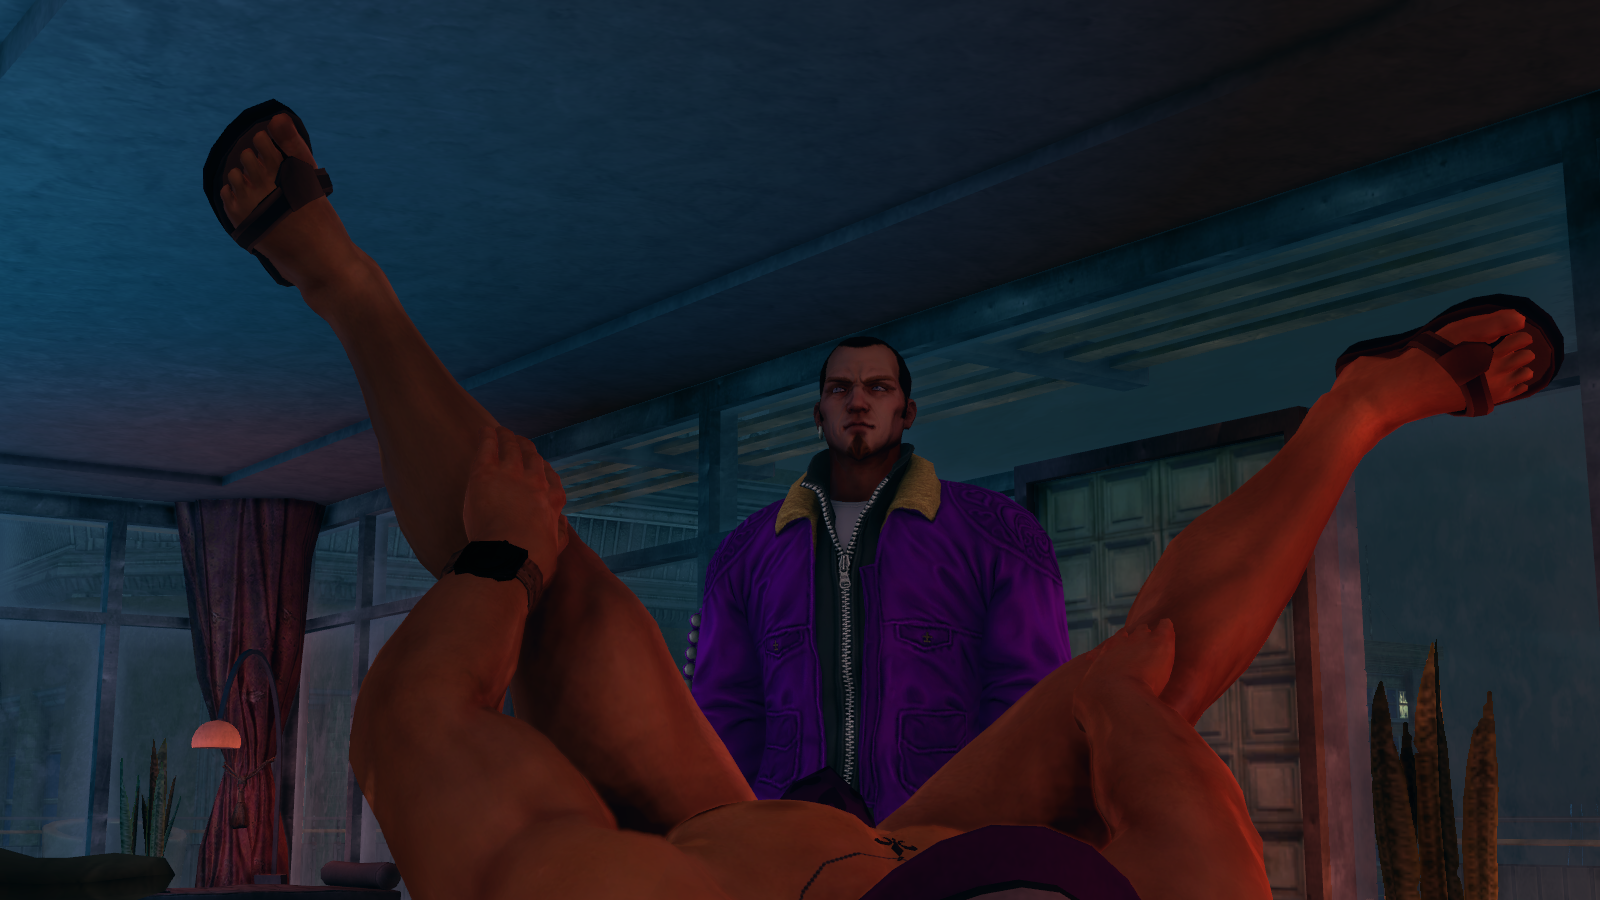 Saints row iv sex mods nude download